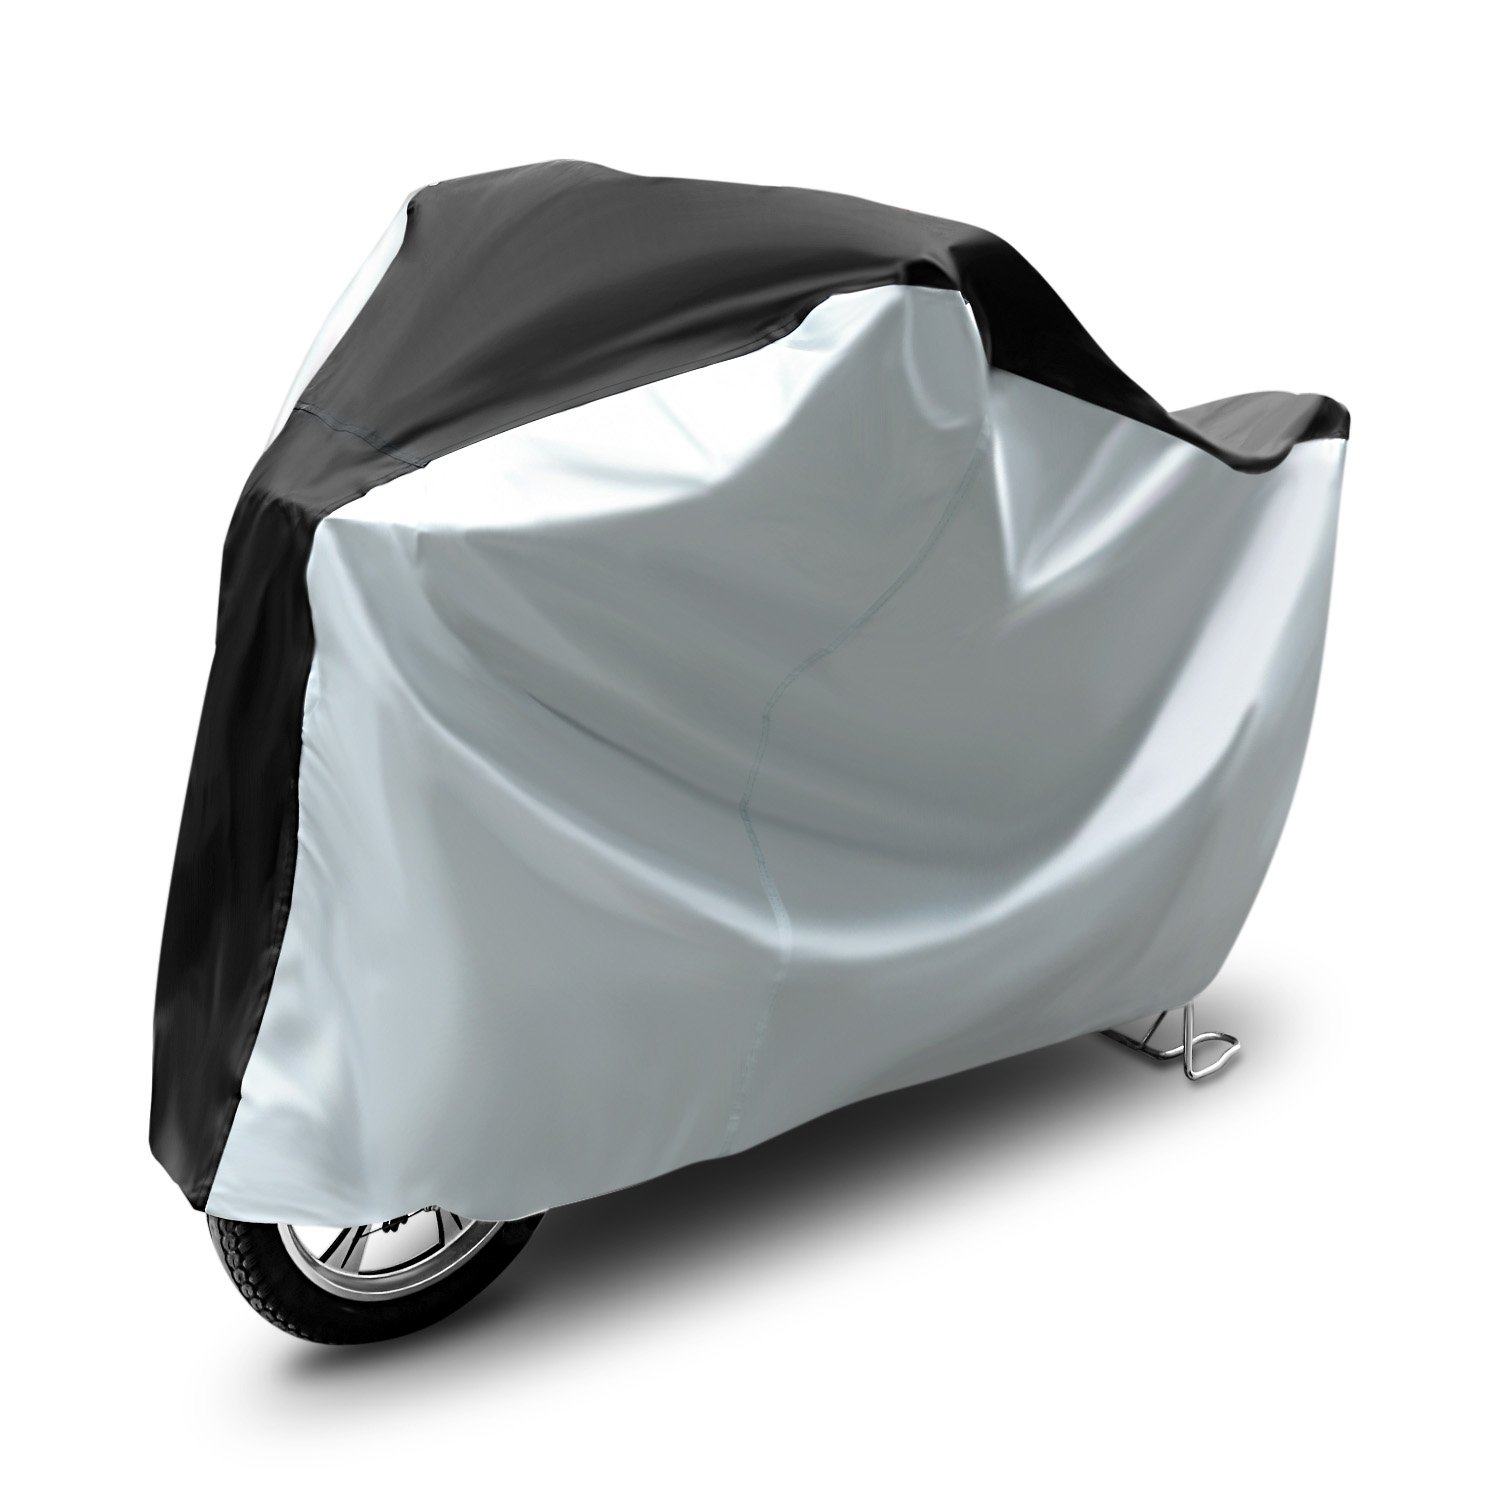 Motorcycle Covers For Outside Storage : Bike cover waterproof outdoor bicycle storage for